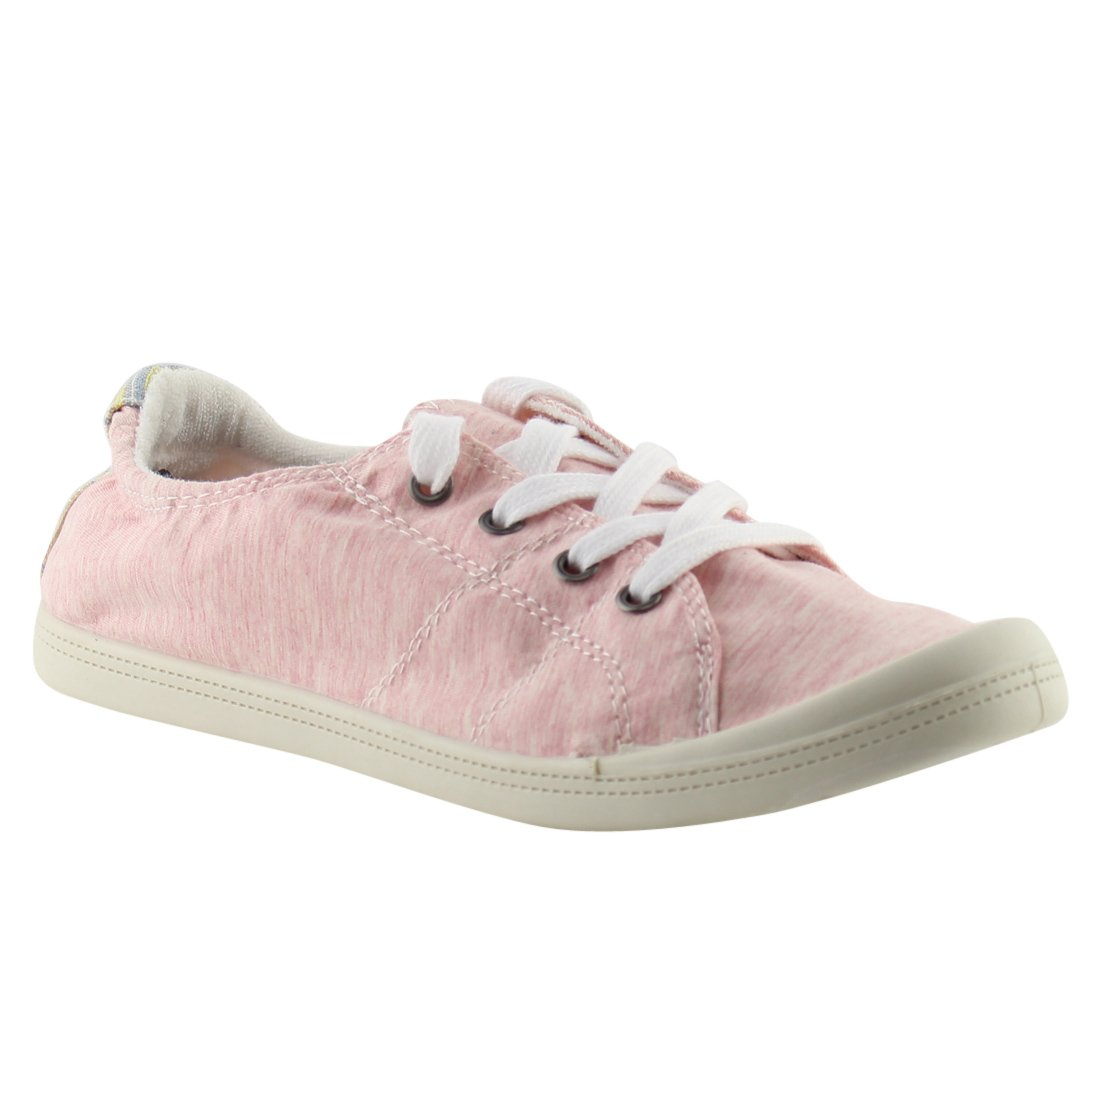 Forever FQ76 Women's Lace Street up White Sole Casual Street Lace Sneakers B07BF4Q3XR 8 M US|Pink 175036